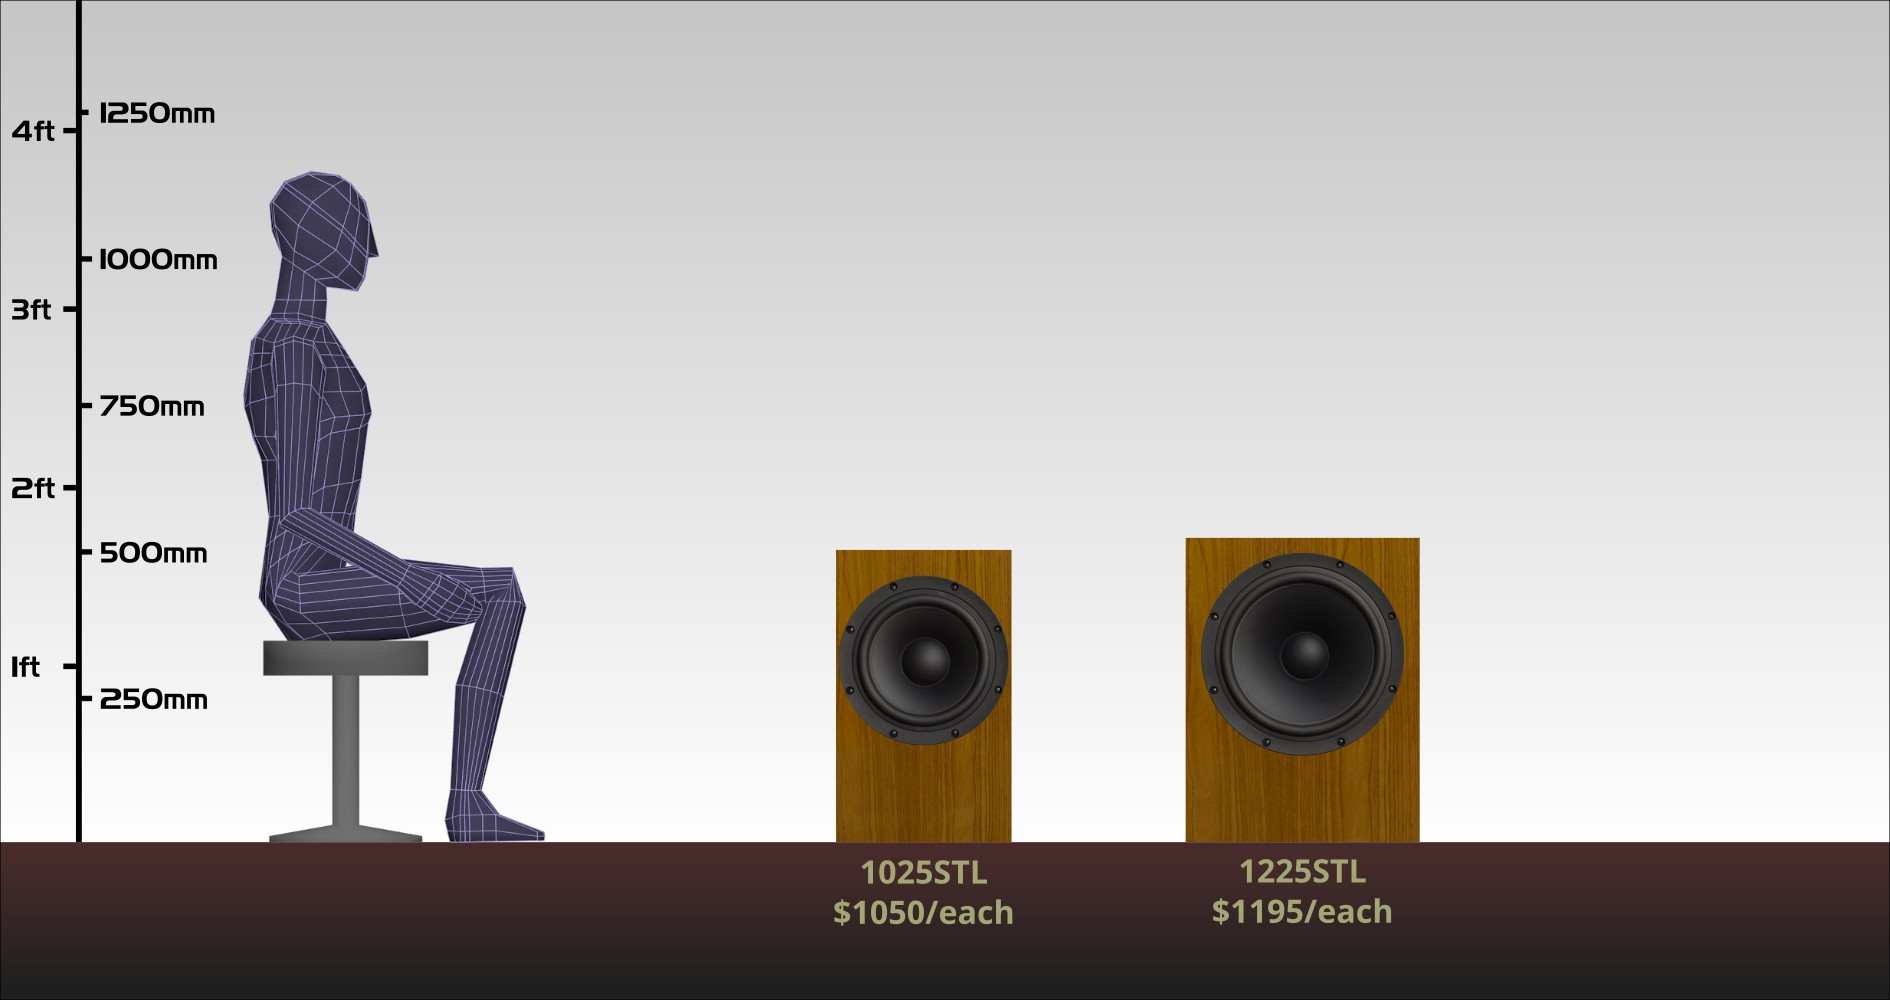 Overview of Subwoofers